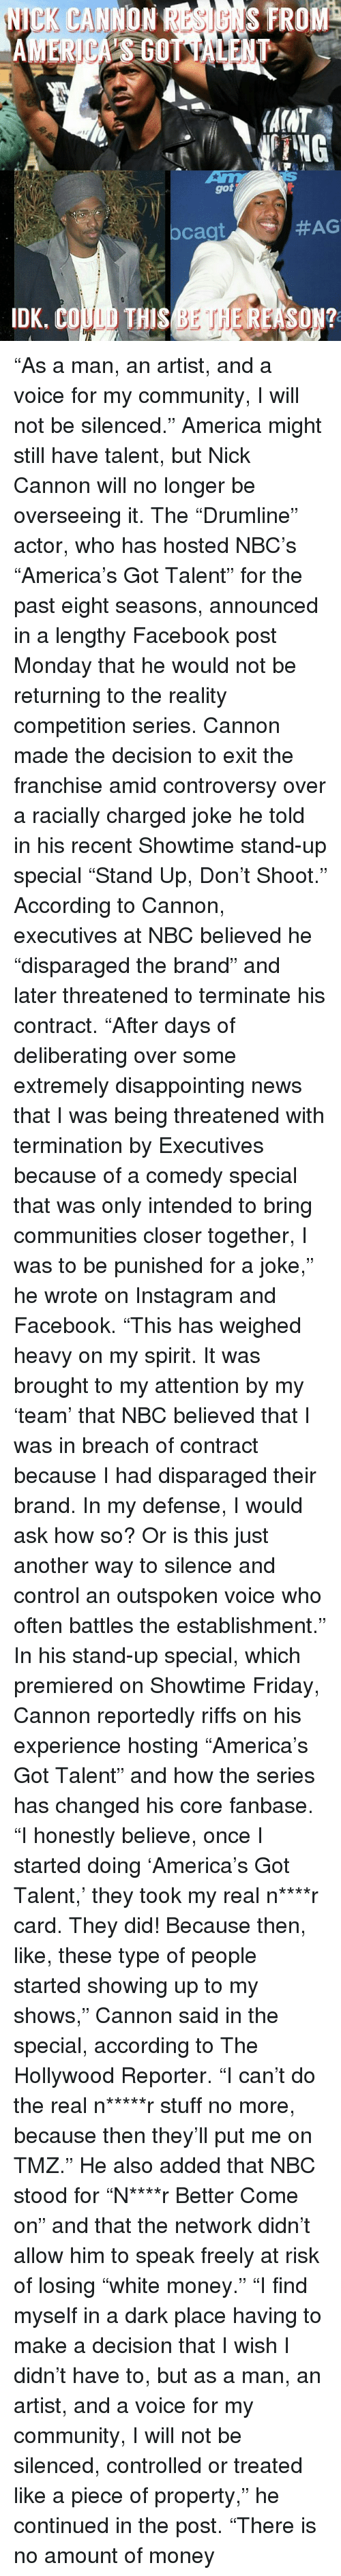 "America, Community, and Facebook: NICK CANNON FROM  AINT  PING  got  #AG  cagt  IDK, CO  THIS  BET EREASON? ""As a man, an artist, and a voice for my community, I will not be silenced."" America might still have talent, but Nick Cannon will no longer be overseeing it. The ""Drumline"" actor, who has hosted NBC's ""America's Got Talent"" for the past eight seasons, announced in a lengthy Facebook post Monday that he would not be returning to the reality competition series. Cannon made the decision to exit the franchise amid controversy over a racially charged joke he told in his recent Showtime stand-up special ""Stand Up, Don't Shoot."" According to Cannon, executives at NBC believed he ""disparaged the brand"" and later threatened to terminate his contract. ""After days of deliberating over some extremely disappointing news that I was being threatened with termination by Executives because of a comedy special that was only intended to bring communities closer together, I was to be punished for a joke,"" he wrote on Instagram and Facebook. ""This has weighed heavy on my spirit. It was brought to my attention by my 'team' that NBC believed that I was in breach of contract because I had disparaged their brand. In my defense, I would ask how so? Or is this just another way to silence and control an outspoken voice who often battles the establishment."" In his stand-up special, which premiered on Showtime Friday, Cannon reportedly riffs on his experience hosting ""America's Got Talent"" and how the series has changed his core fanbase. ""I honestly believe, once I started doing 'America's Got Talent,' they took my real n****r card. They did! Because then, like, these type of people started showing up to my shows,"" Cannon said in the special, according to The Hollywood Reporter. ""I can't do the real n*****r stuff no more, because then they'll put me on TMZ."" He also added that NBC stood for ""N****r Better Come on"" and that the network didn't allow him to speak freely at risk of losing ""white money."" ""I find myself in a dark place having to make a decision that I wish I didn't have to, but as a man, an artist, and a voice for my community, I will not be silenced, controlled or treated like a piece of property,"" he continued in the post. ""There is no amount of money"